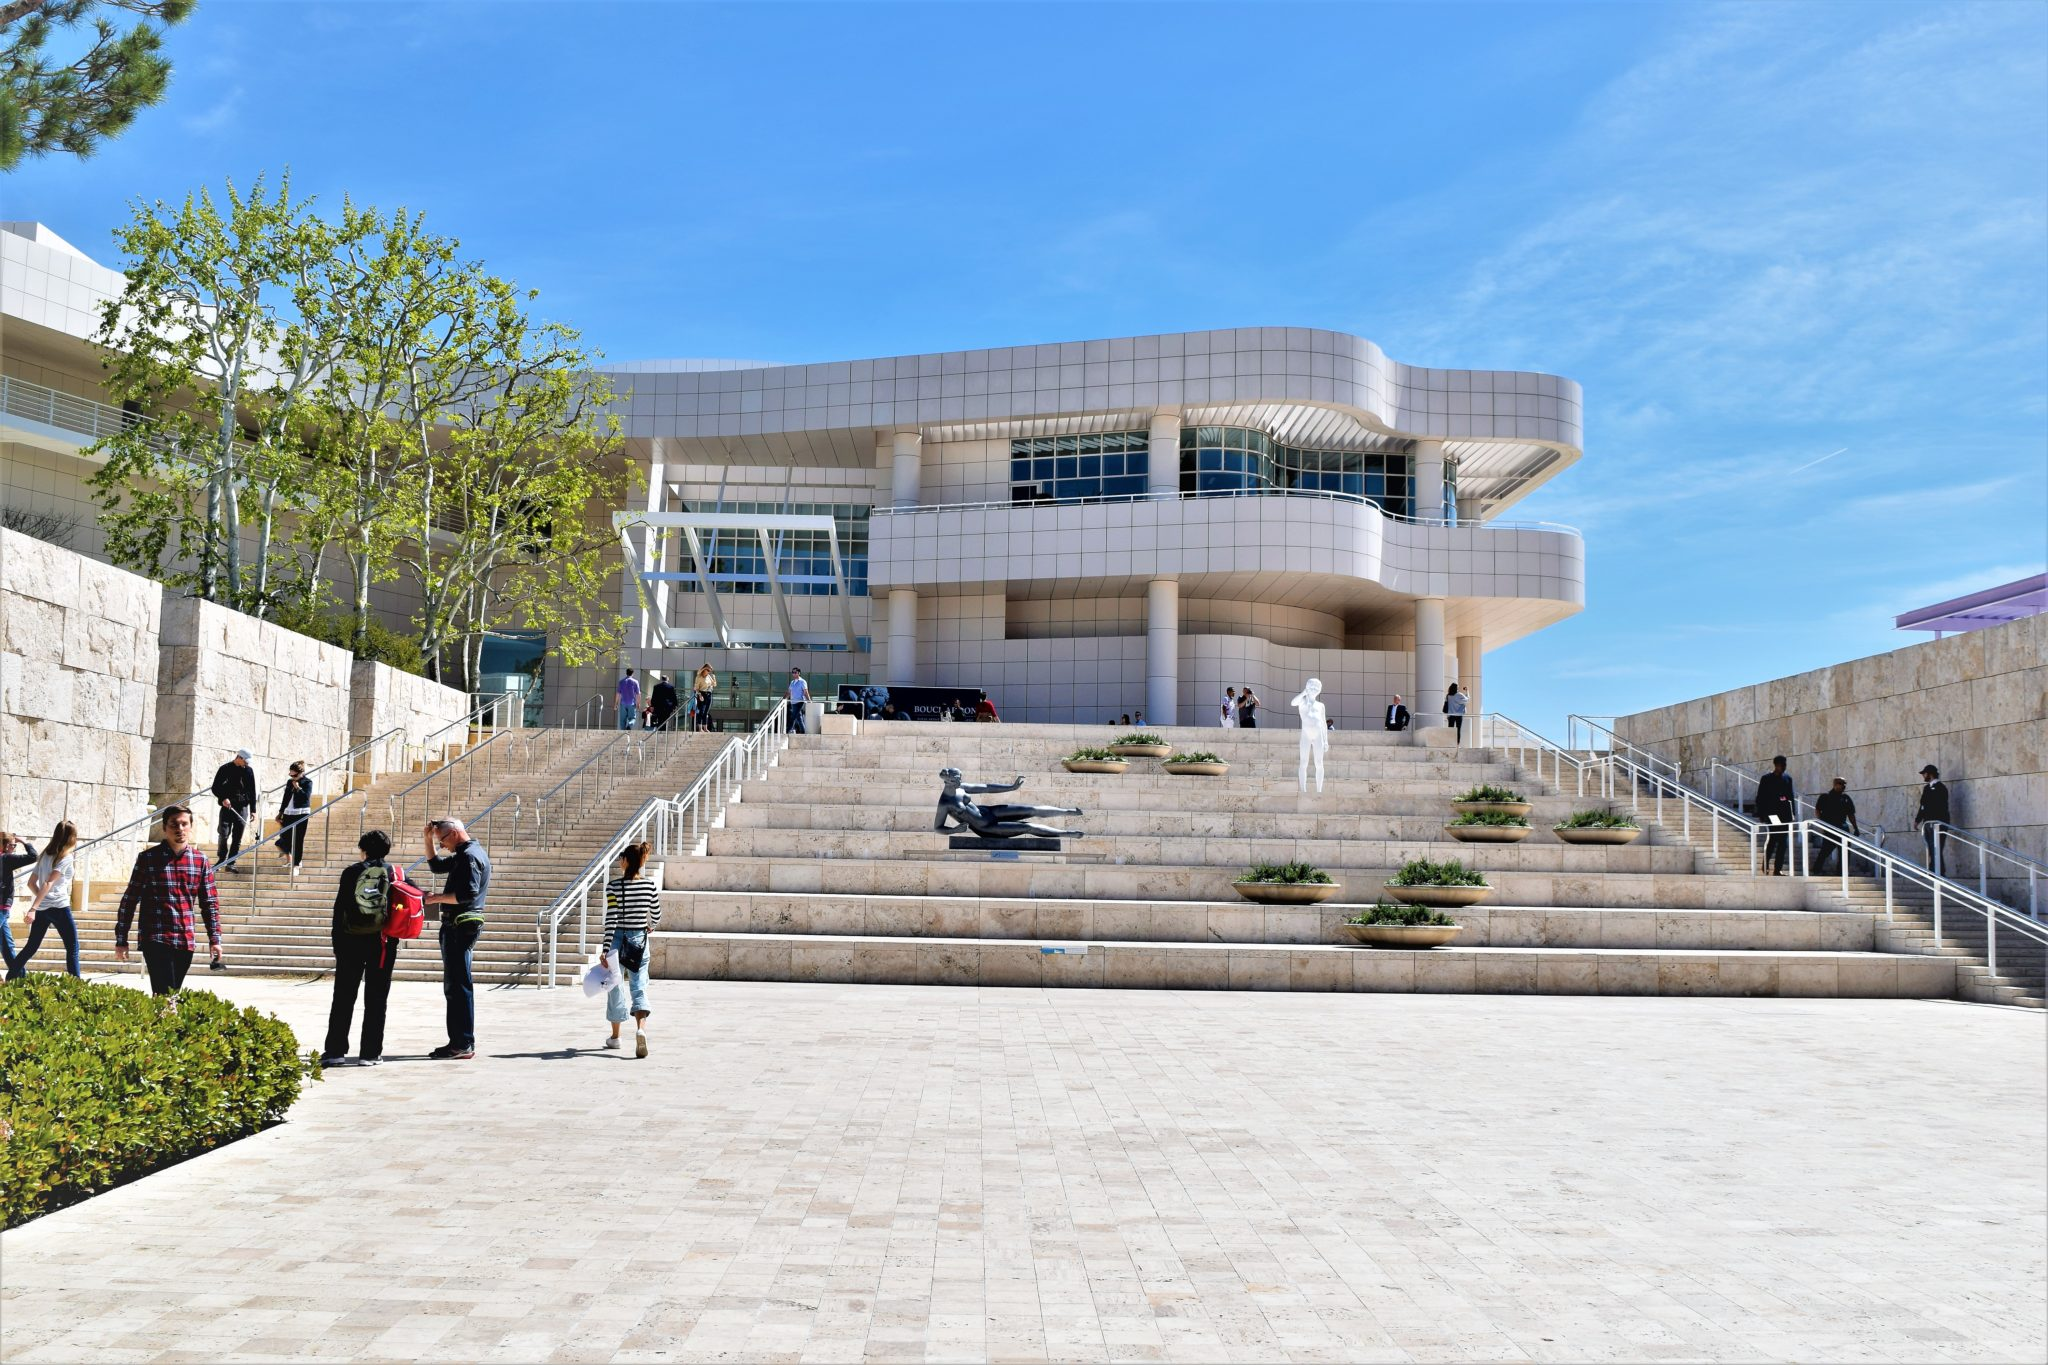 free things to do in los angeles, the getty center